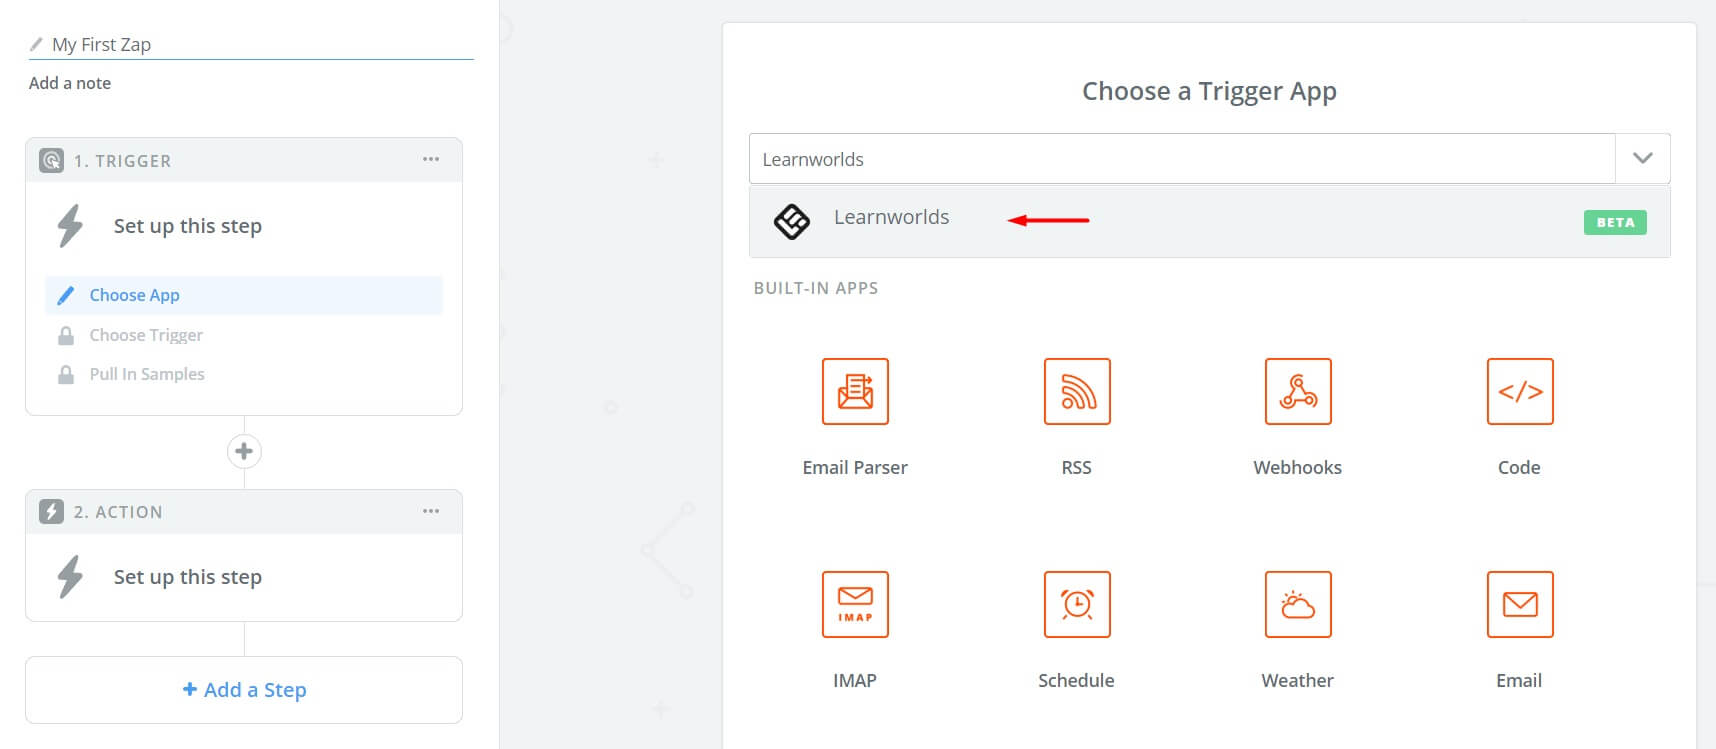 LearnWorlds now connects with Zapier